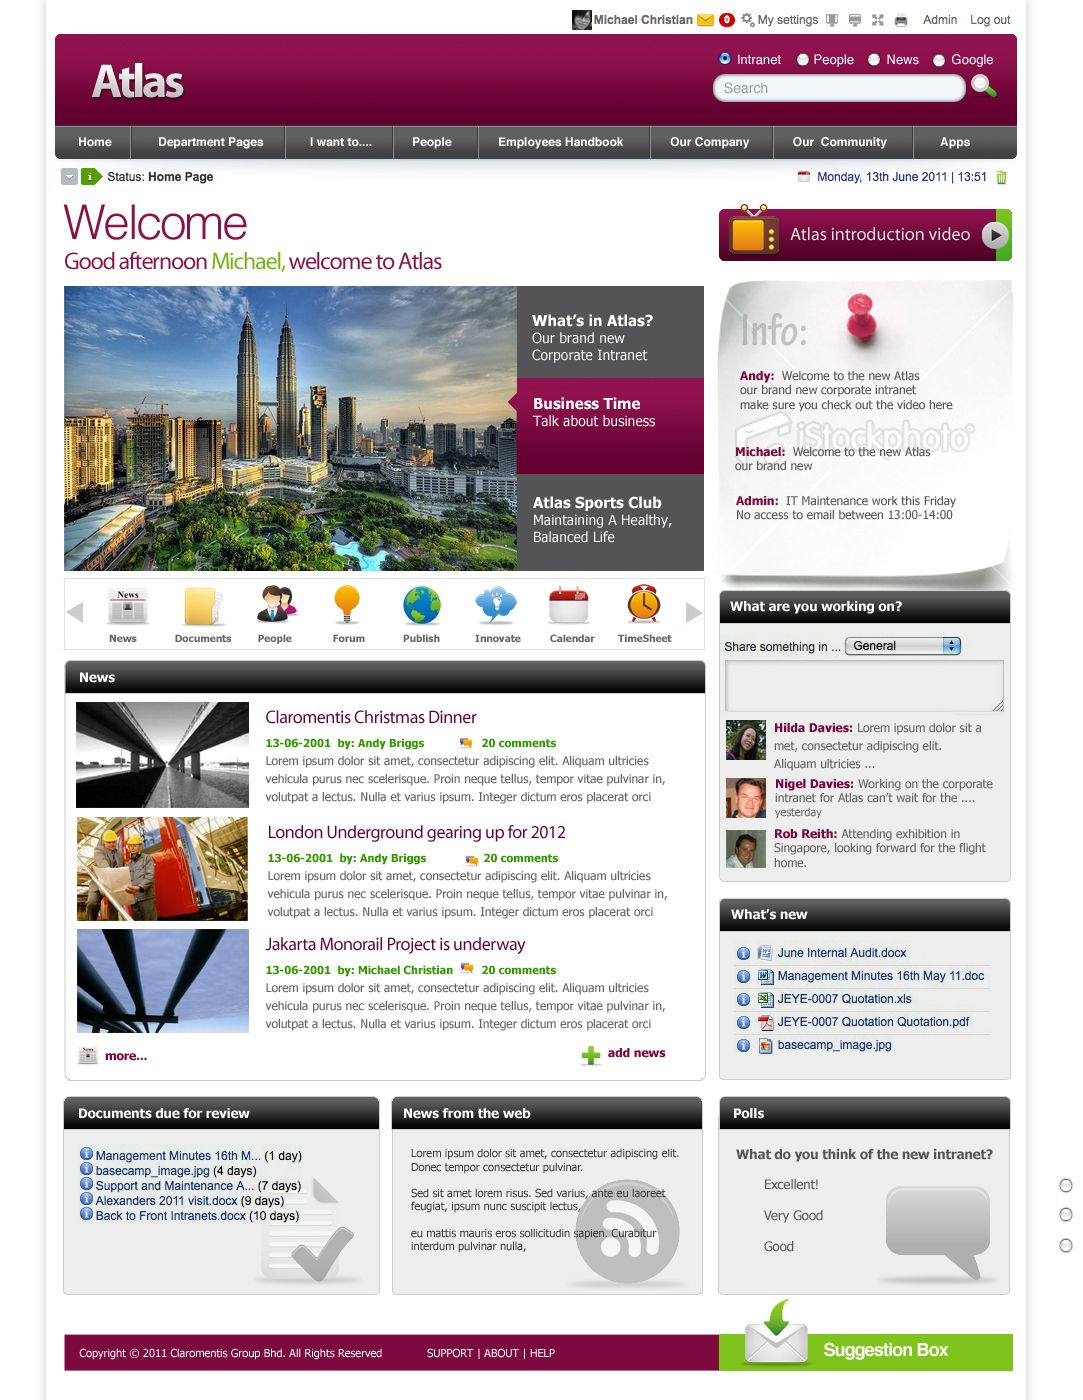 Sharepoint site design ideas - Mixing Social And Productivity Enhancing Tools With This Beautiful Intranet Design